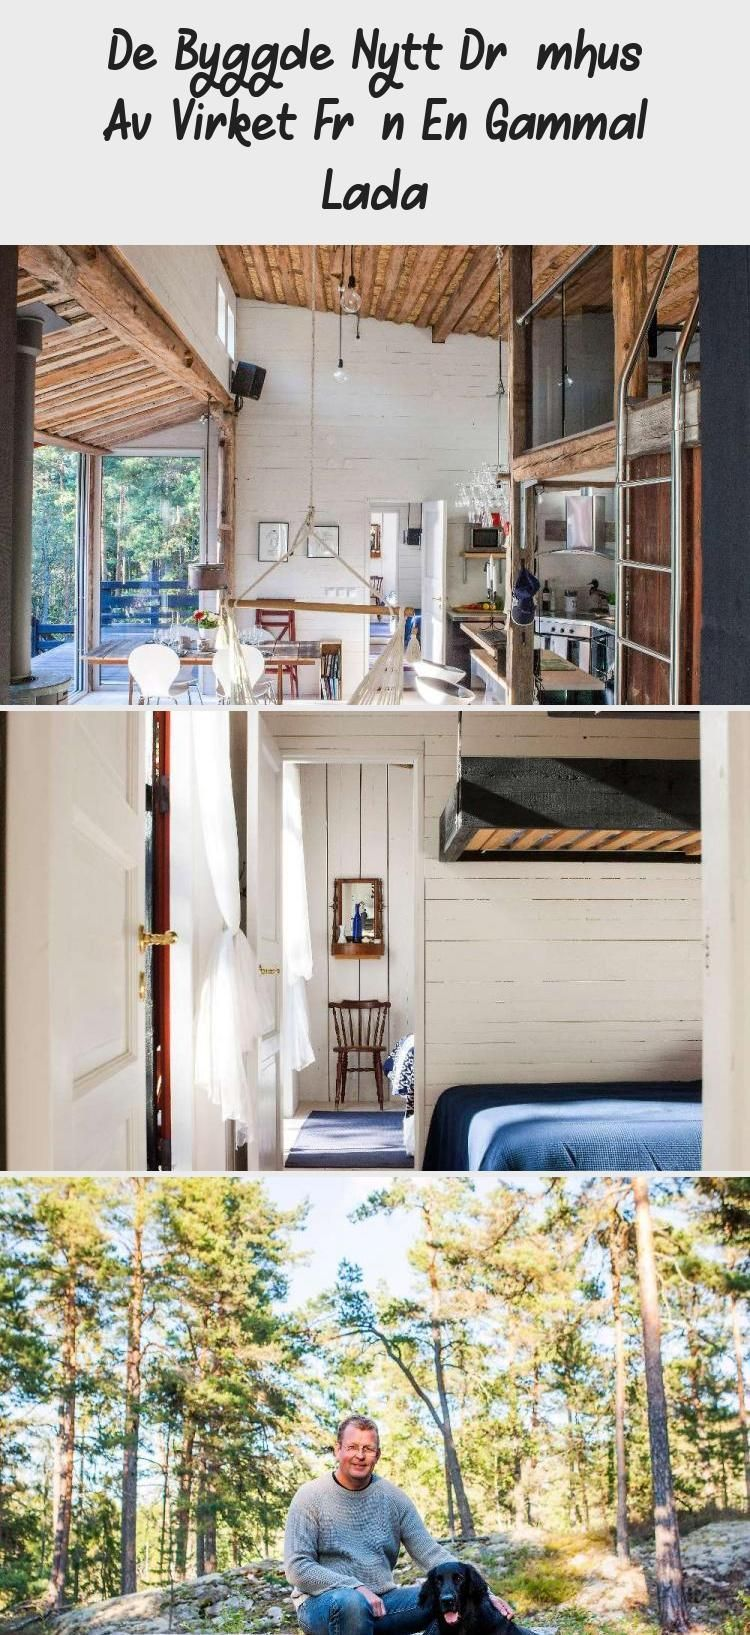 They Built New Dream House Of The Wood From An Old Barn – Inter …